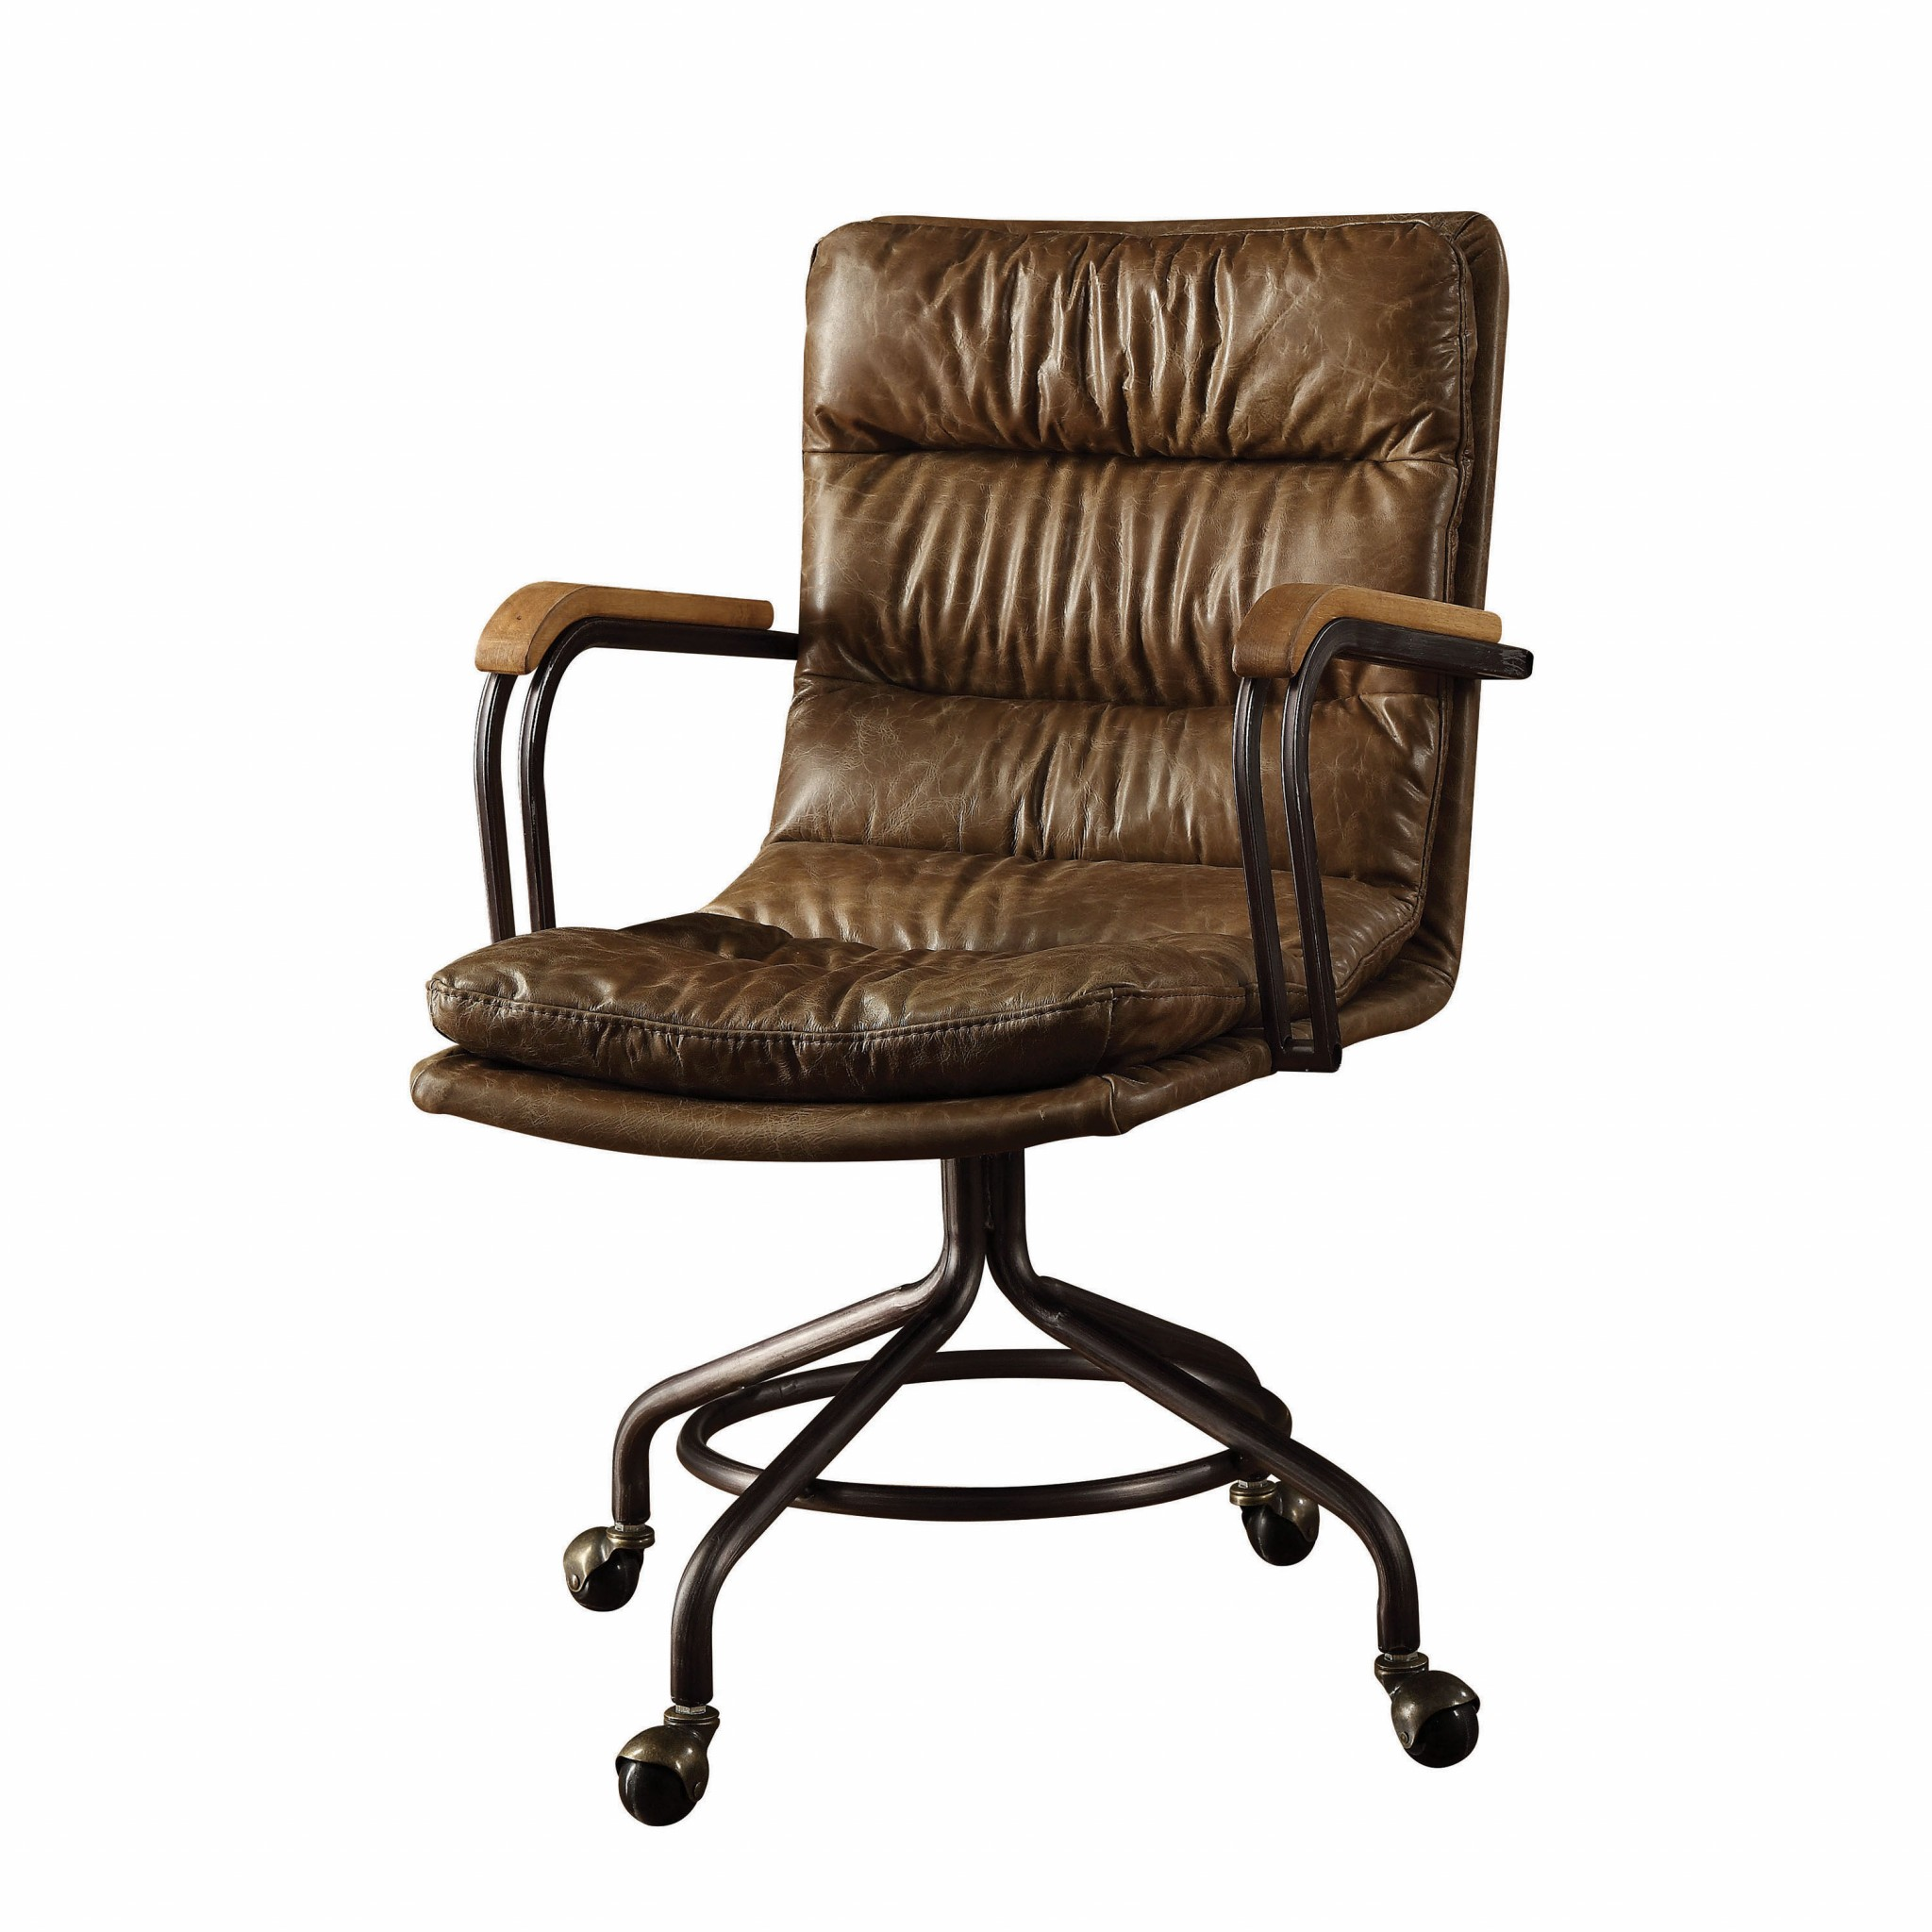 Leather Office Chair In Vintage Whiskey - Top Grain Leather, Foam,  Vintage Whiskey